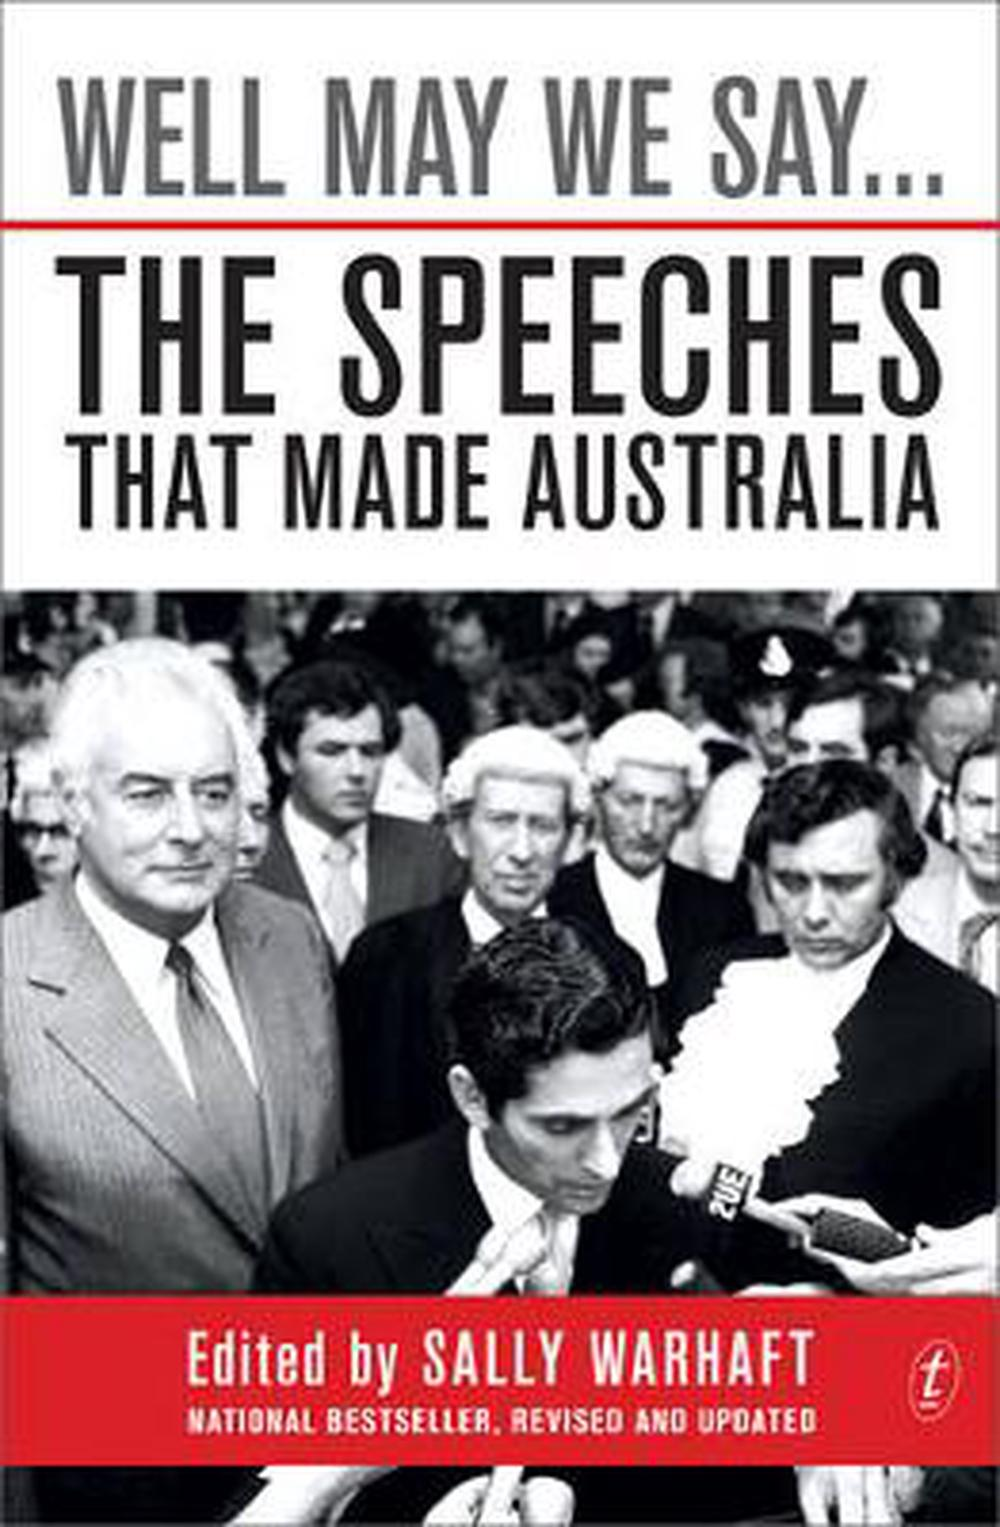 Well May We Say...The Speeches That Made Australia